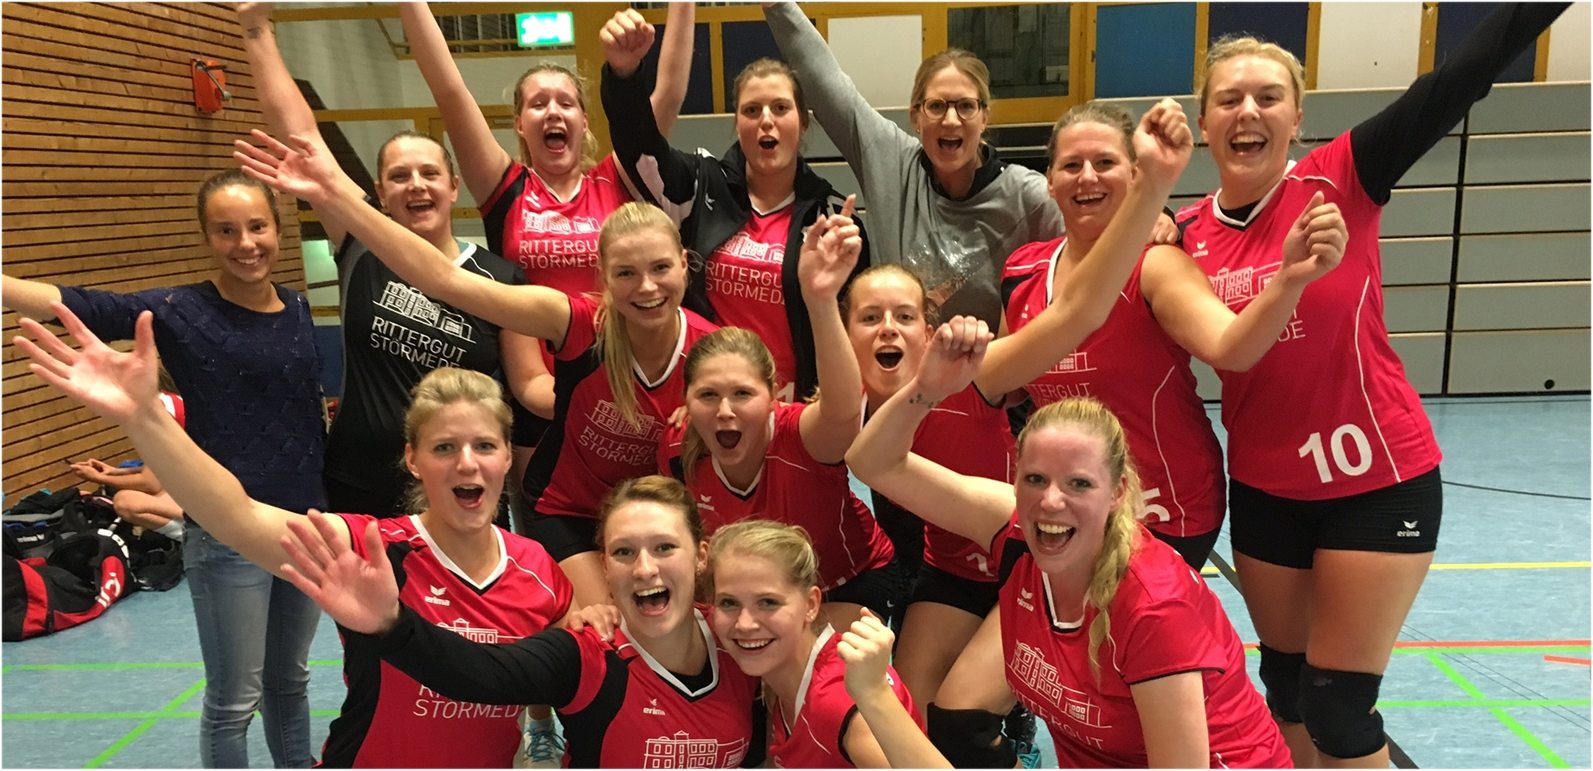 Volleyball SUS Störmede